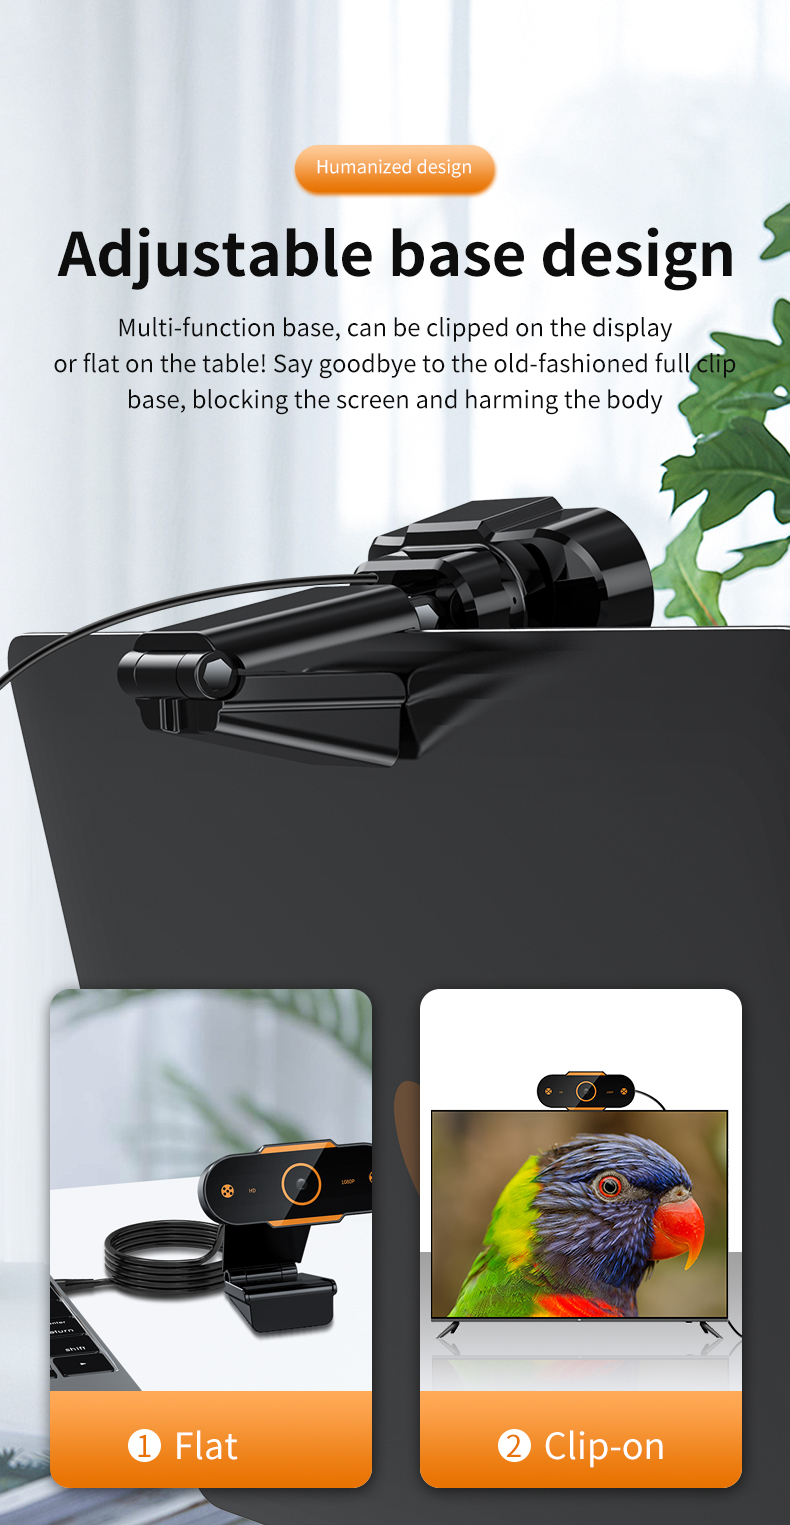 Bird - Auto Focus 1944P HD Webcam 1080P web camera With Microphone smart Webcams for Live Broadcast Video Calling Home Conference Work